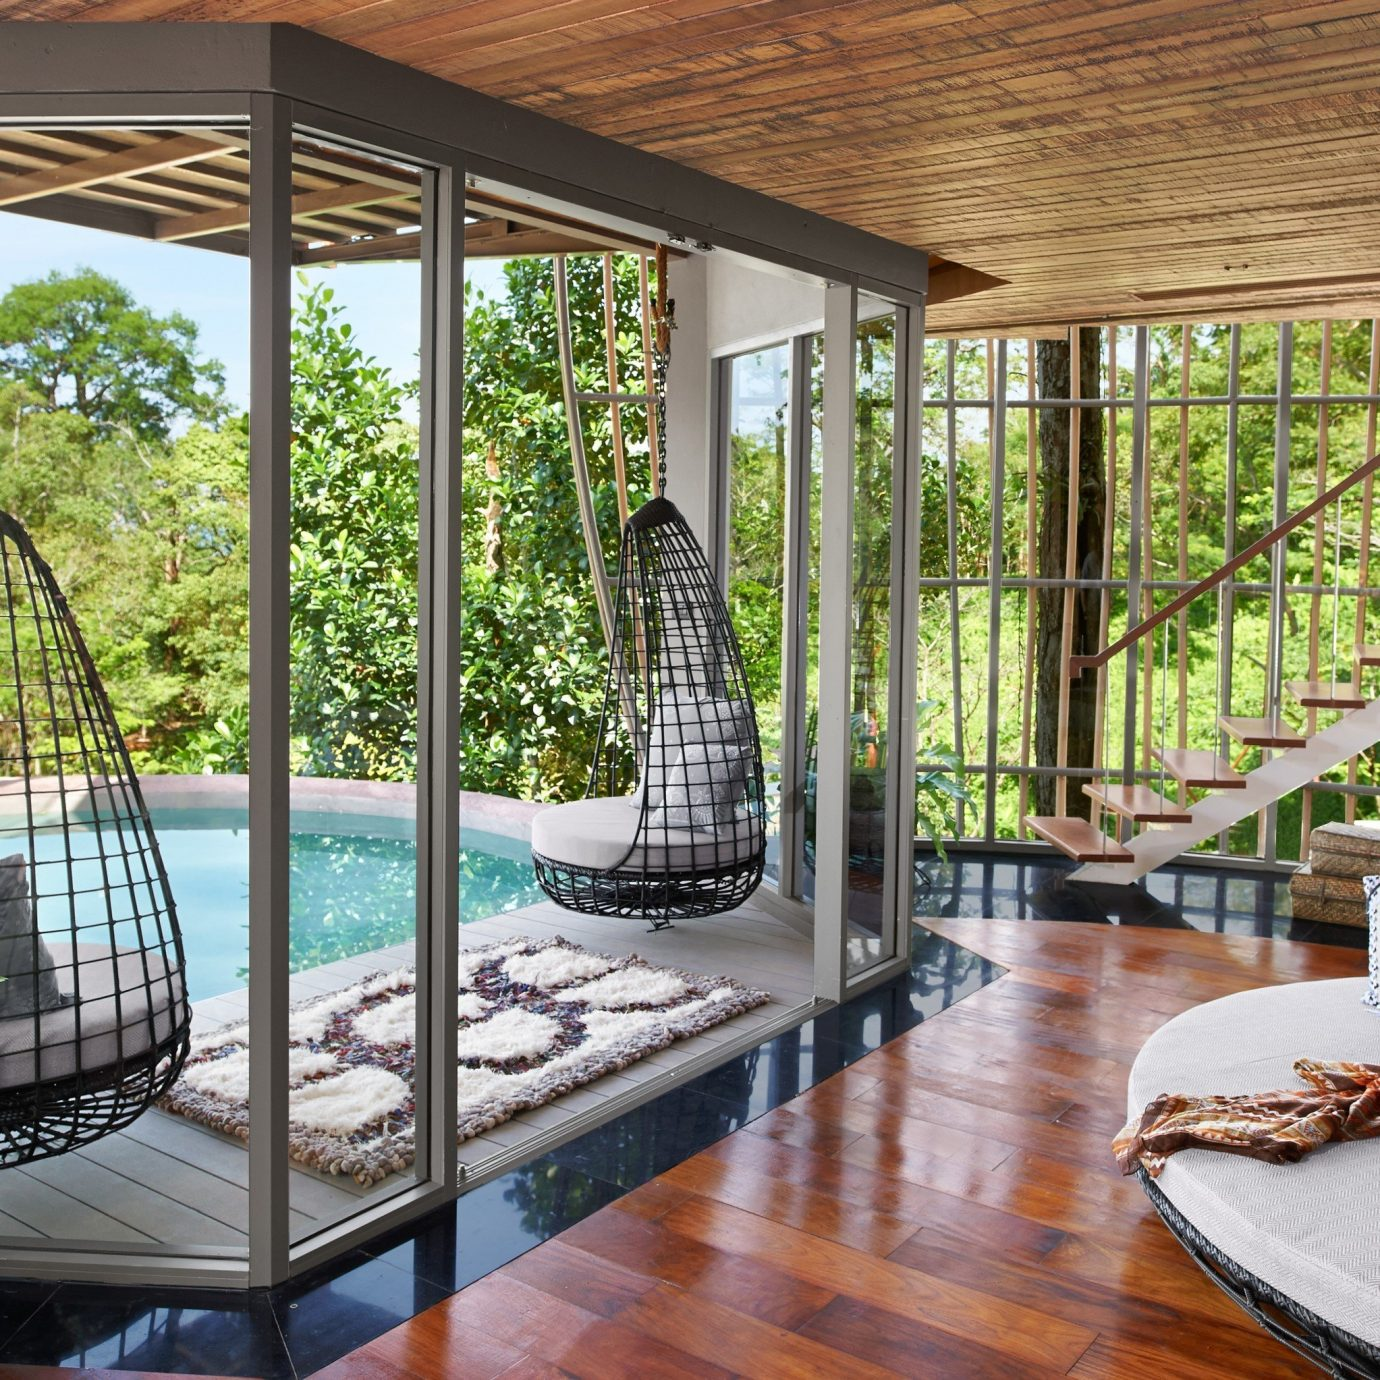 Travel Tips building table property window Living estate porch real estate outdoor structure Villa backyard furniture home Courtyard condominium Resort interior design Dining mansion orangery swimming pool area wood